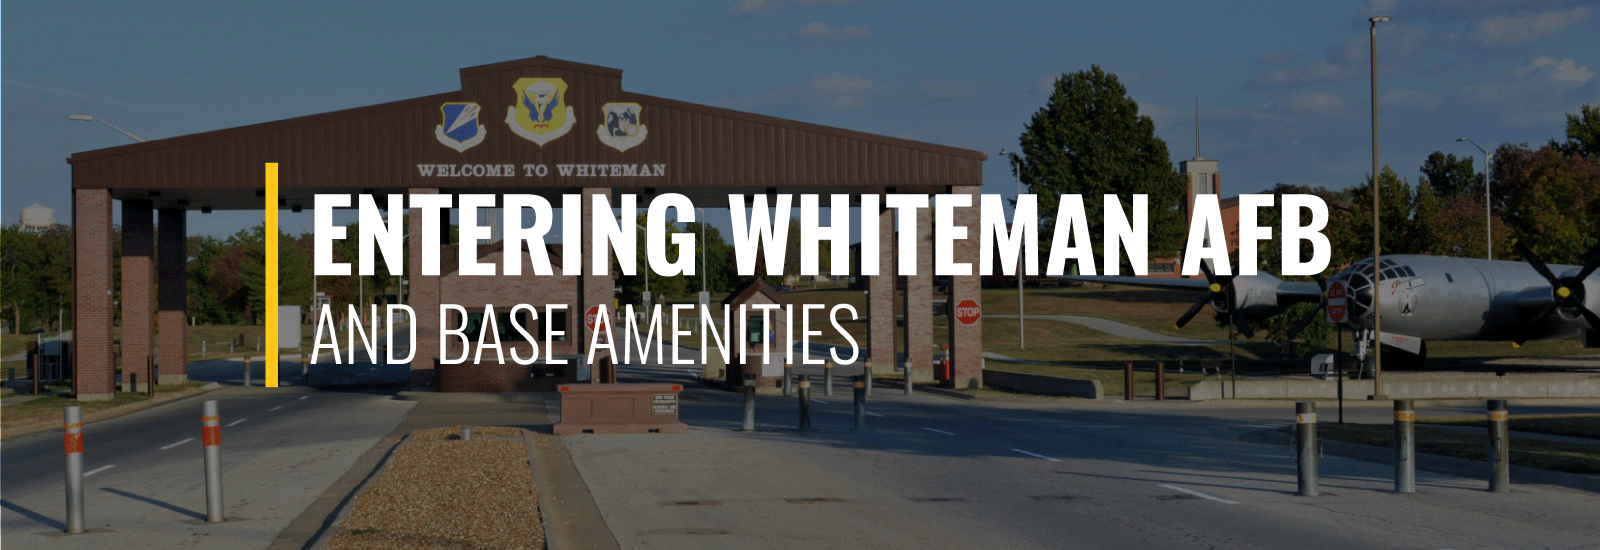 Entering Whiteman AFB and Base Amenities